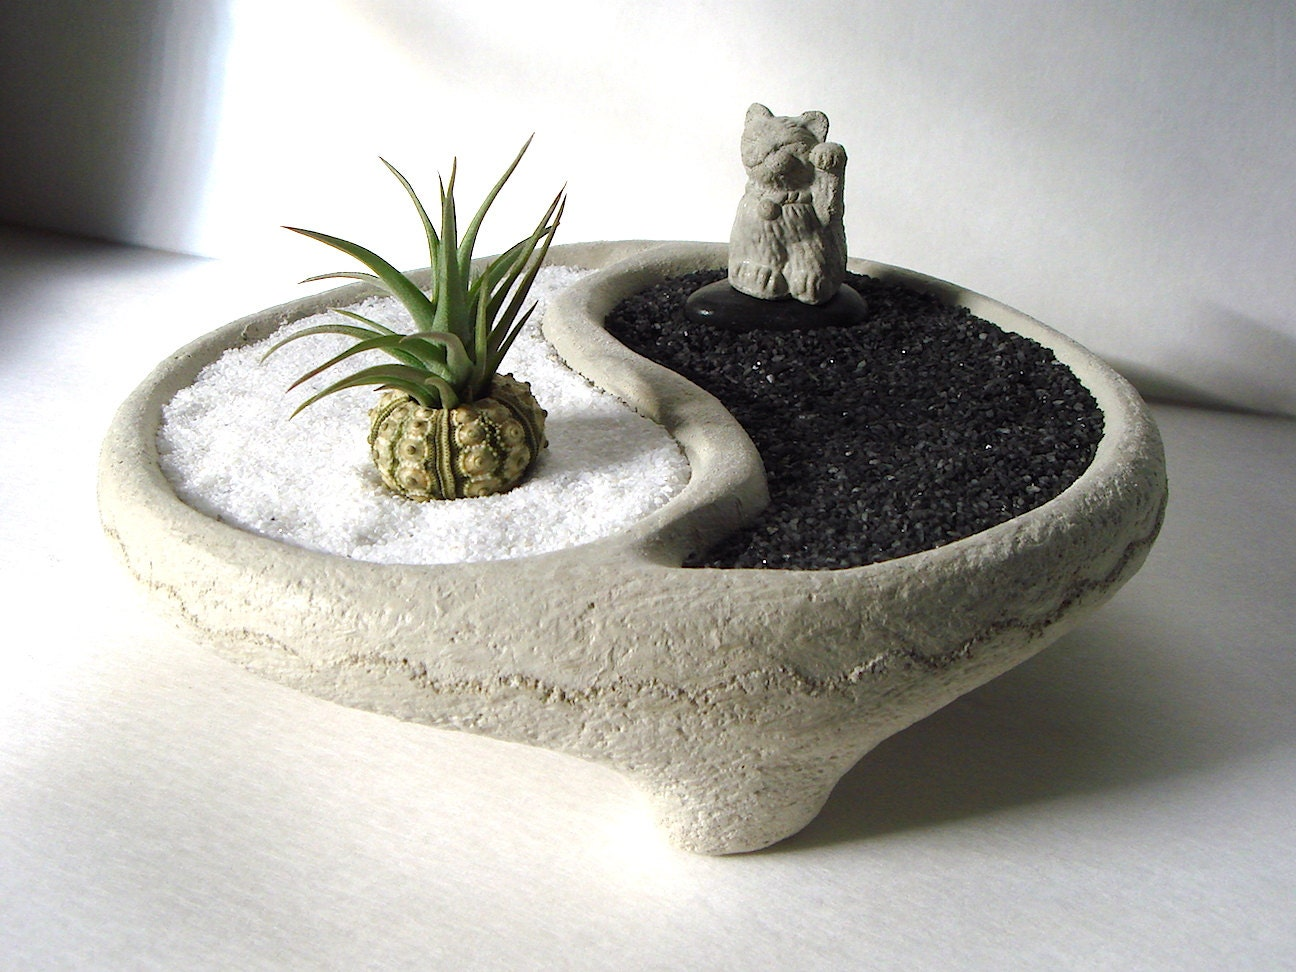 yin yang bowl sweet mini lucky cat maneki neko air plant. Black Bedroom Furniture Sets. Home Design Ideas